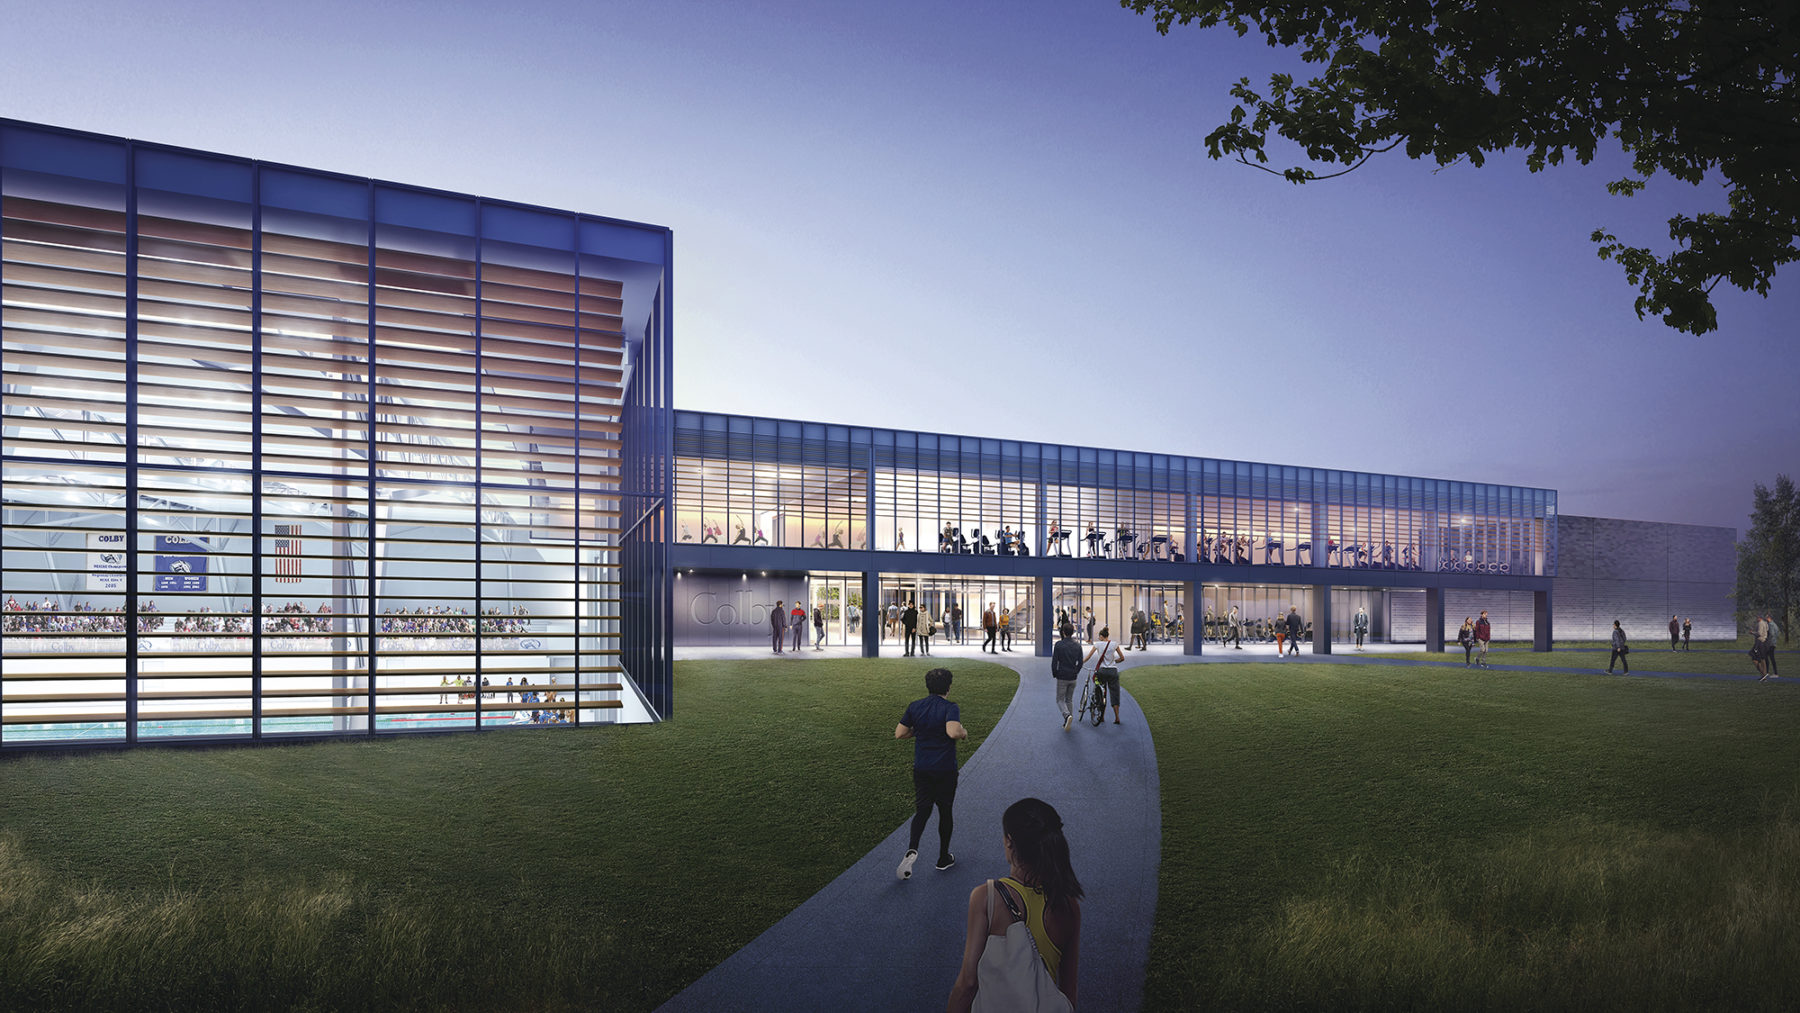 Exterior render of colby college athletics building